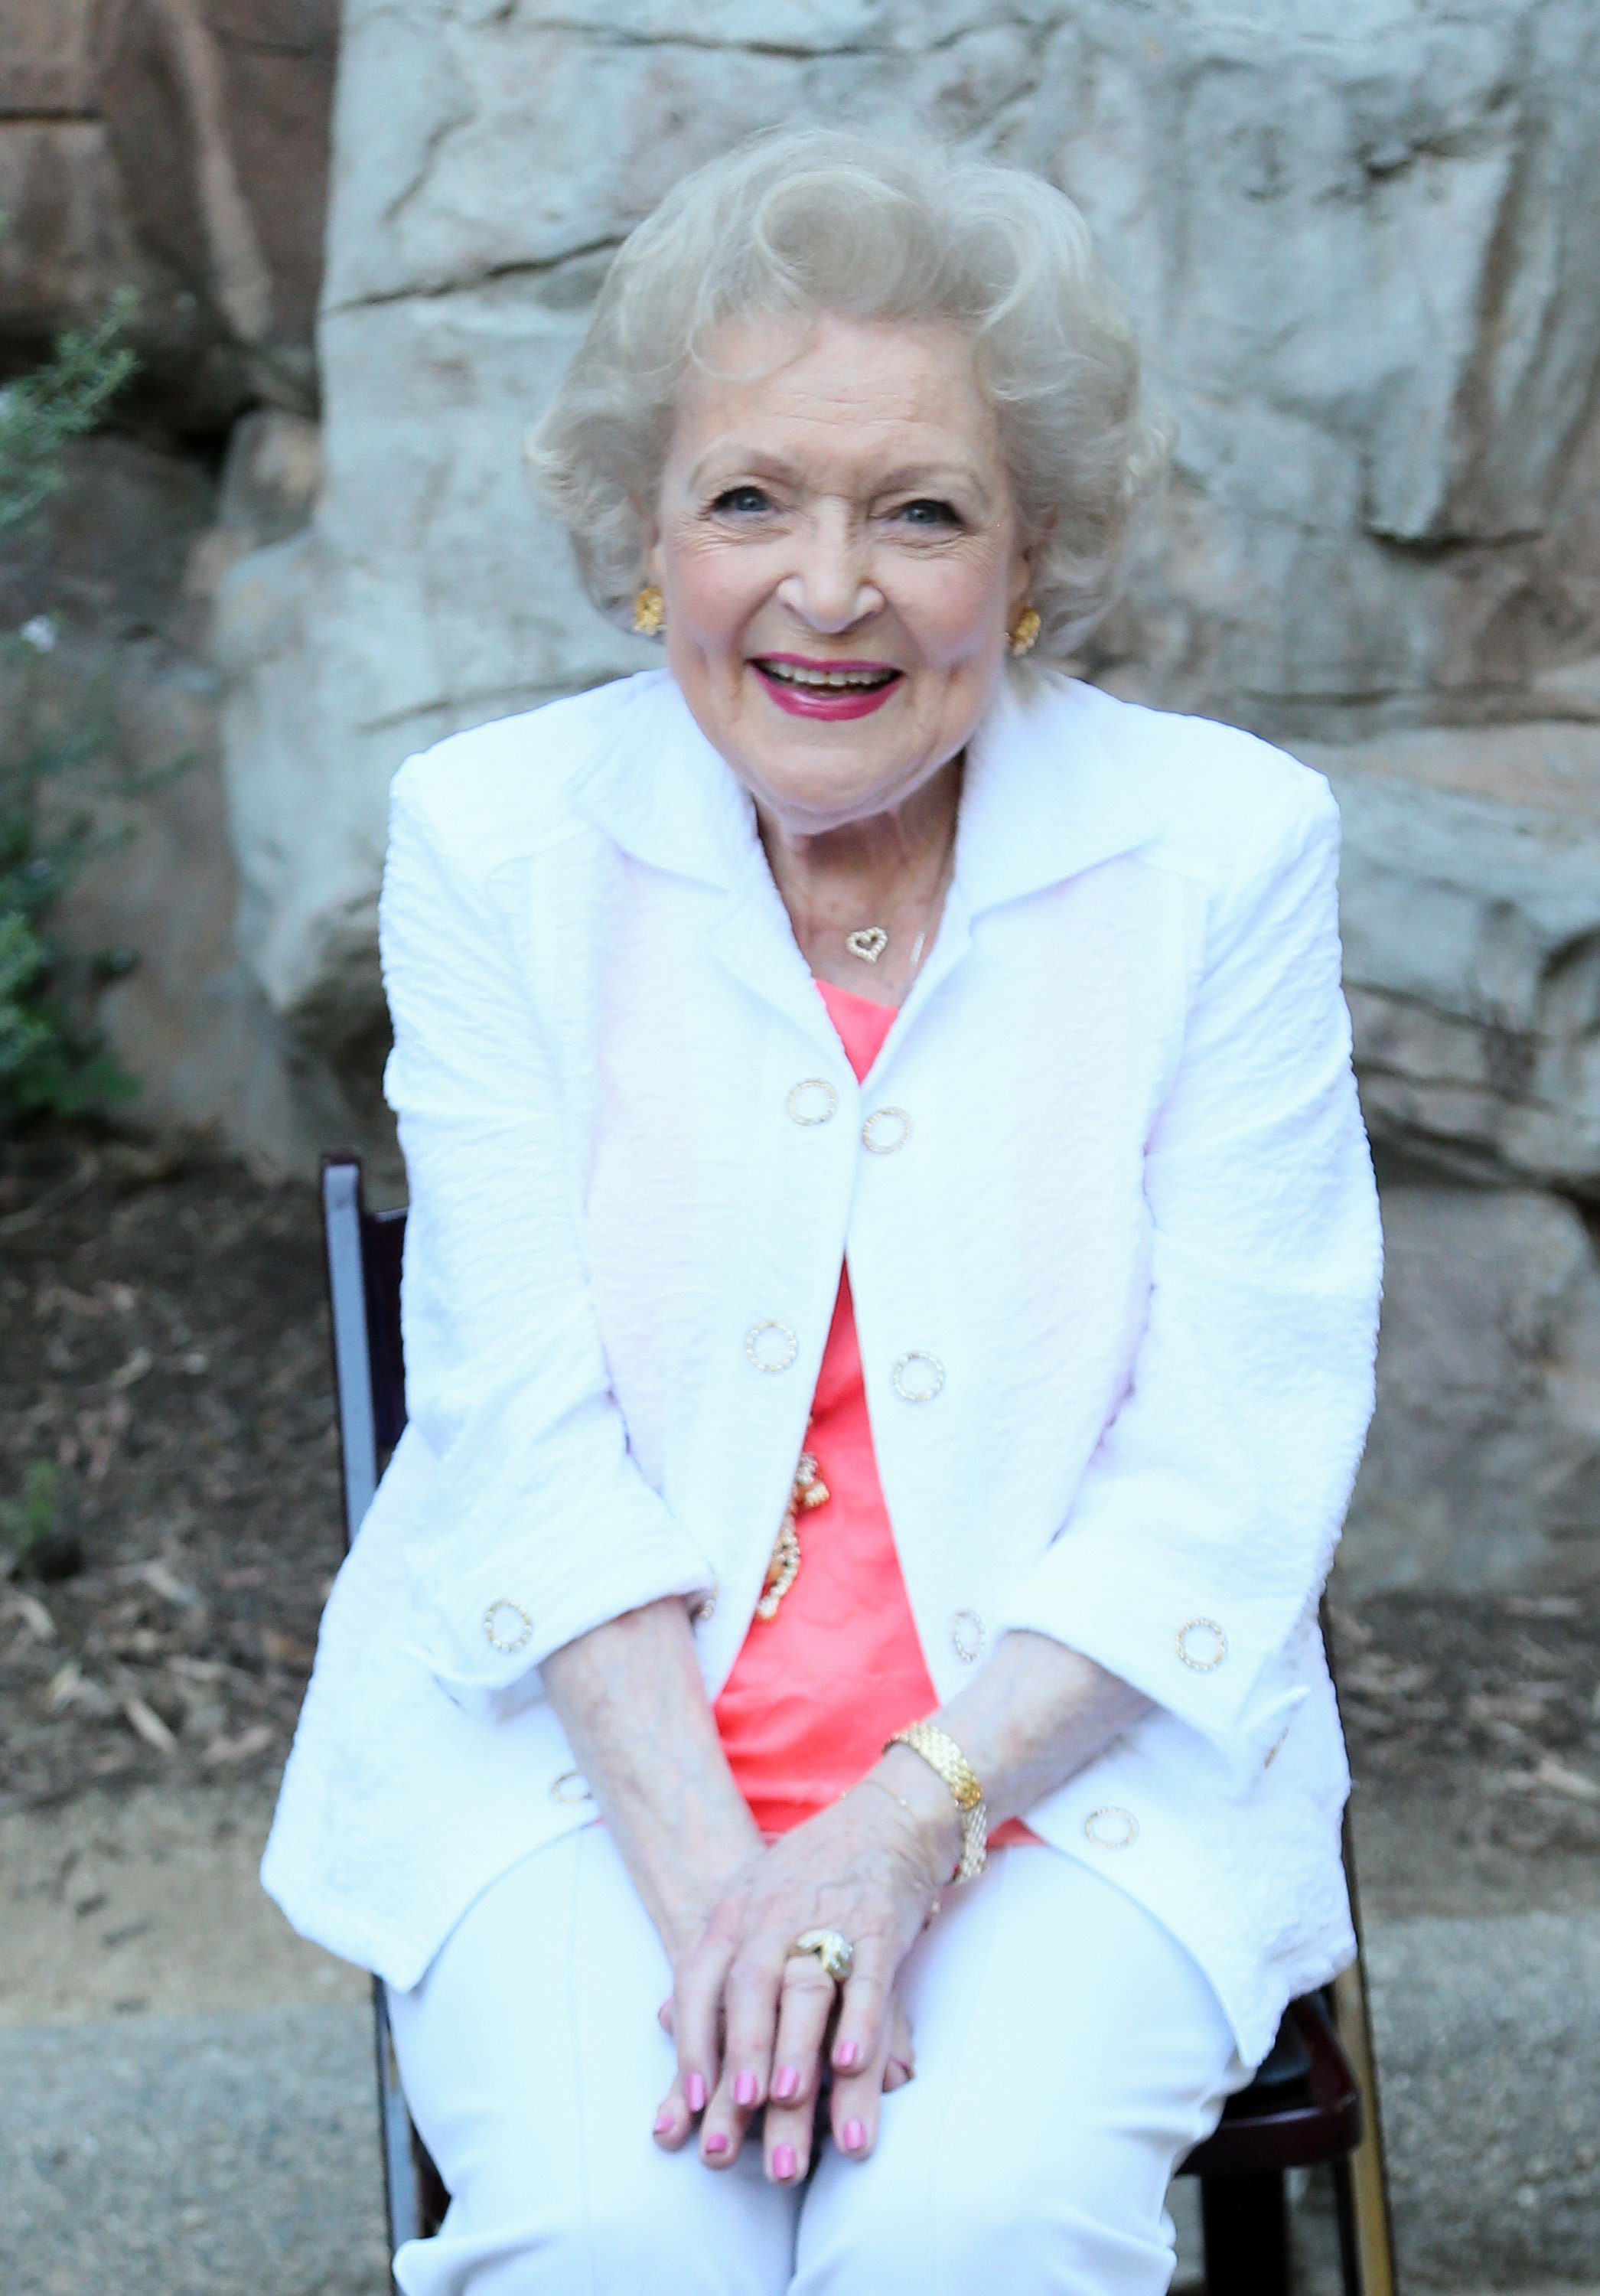 Betty White attends the Greater Los Angeles Zoo Association's (GLAZA) 45th Annual Beastly Ball on June 20, 2015, in Los Angeles, California. | Source: Getty Images.